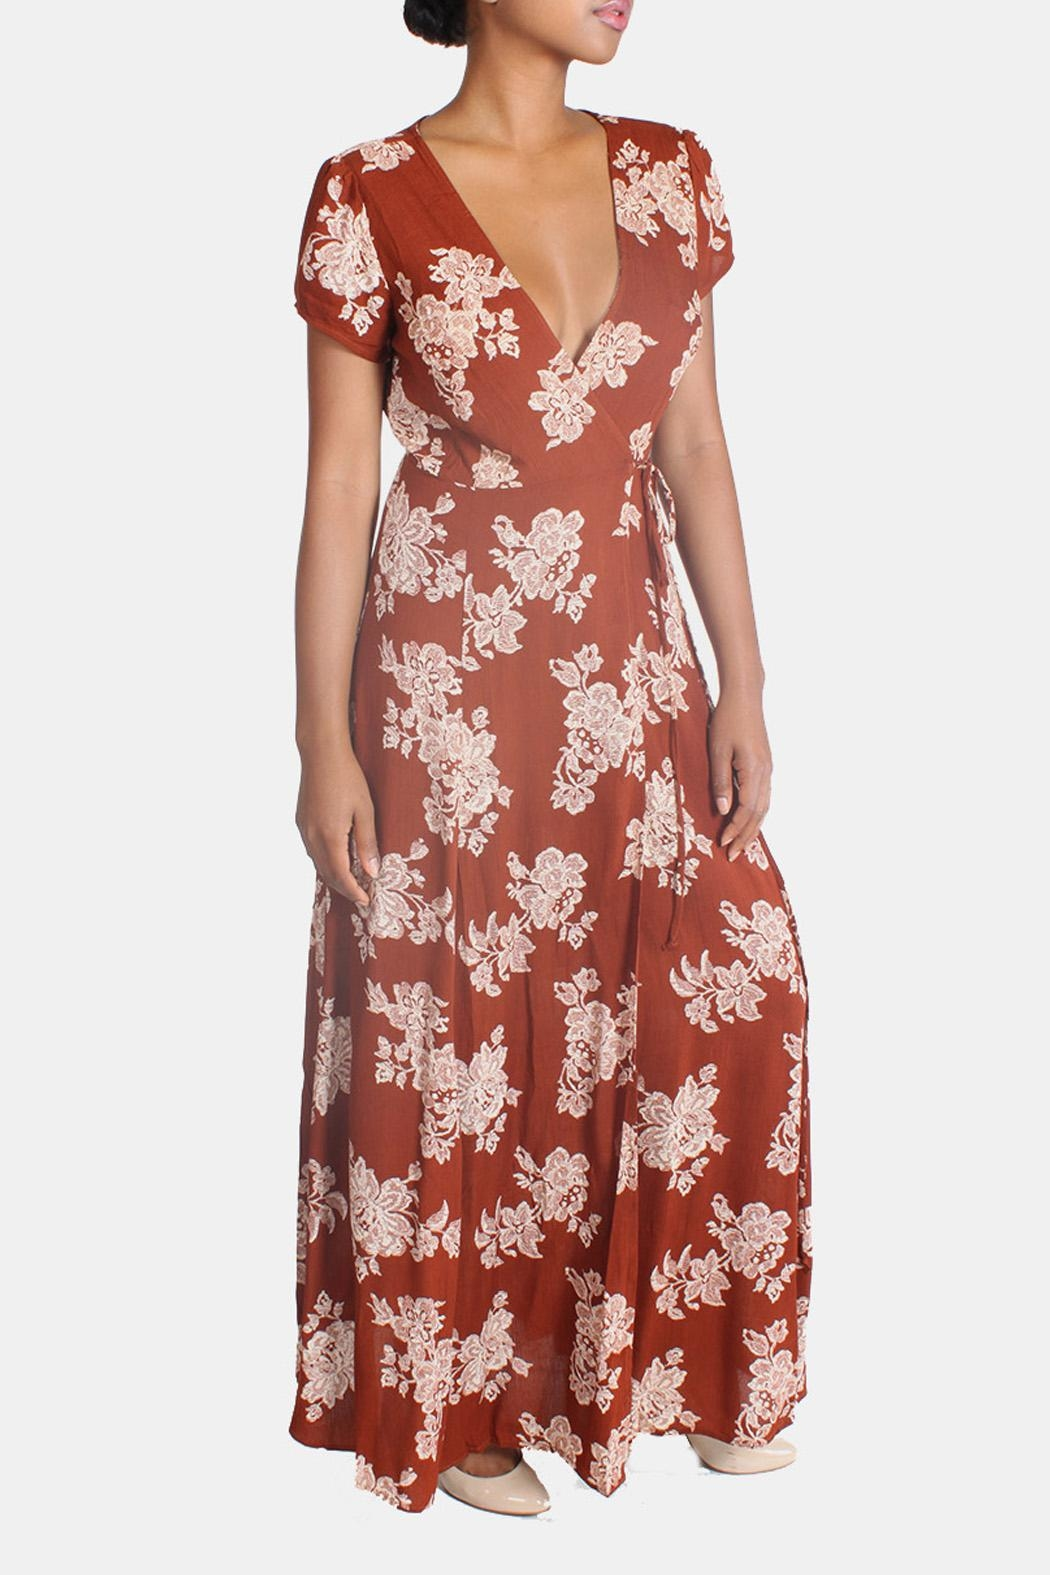 Rokoko Floral Wrap Dress From Los Angeles By Goldies